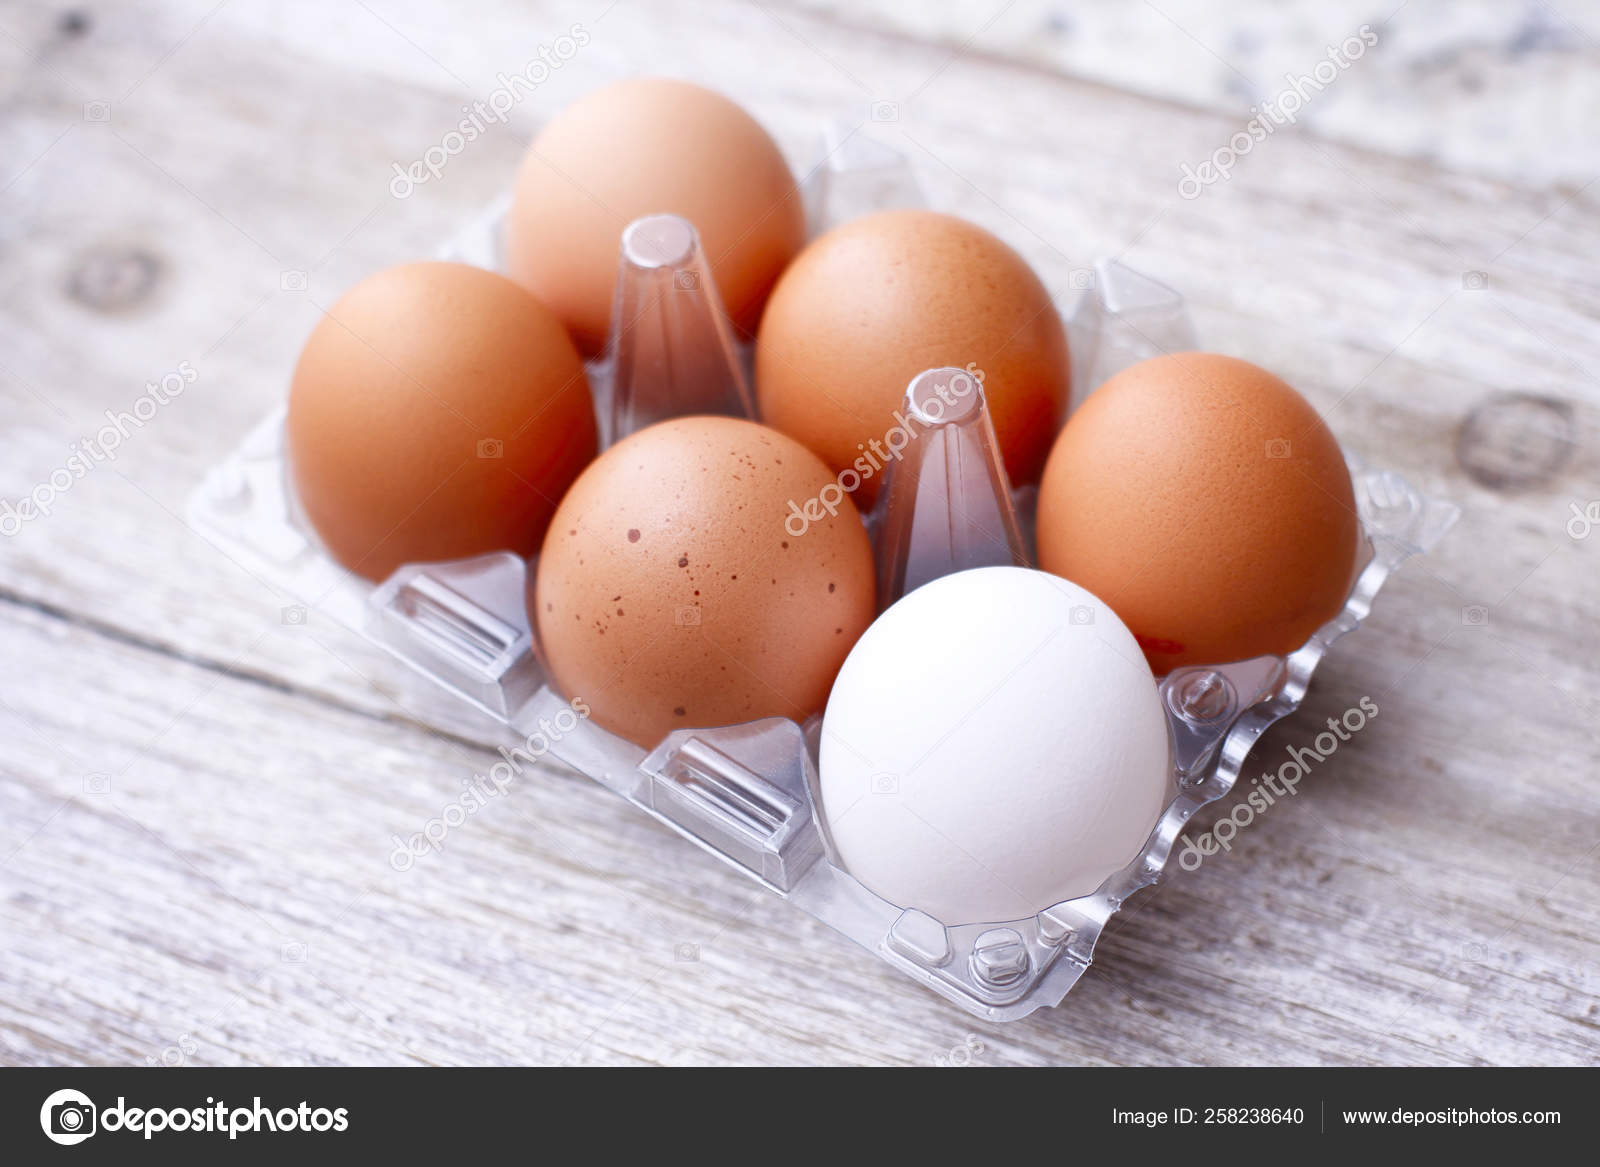 Six Eggs Plastic Packing Wooden Table One Different Color Egg Stock Photo C Exi 258238640